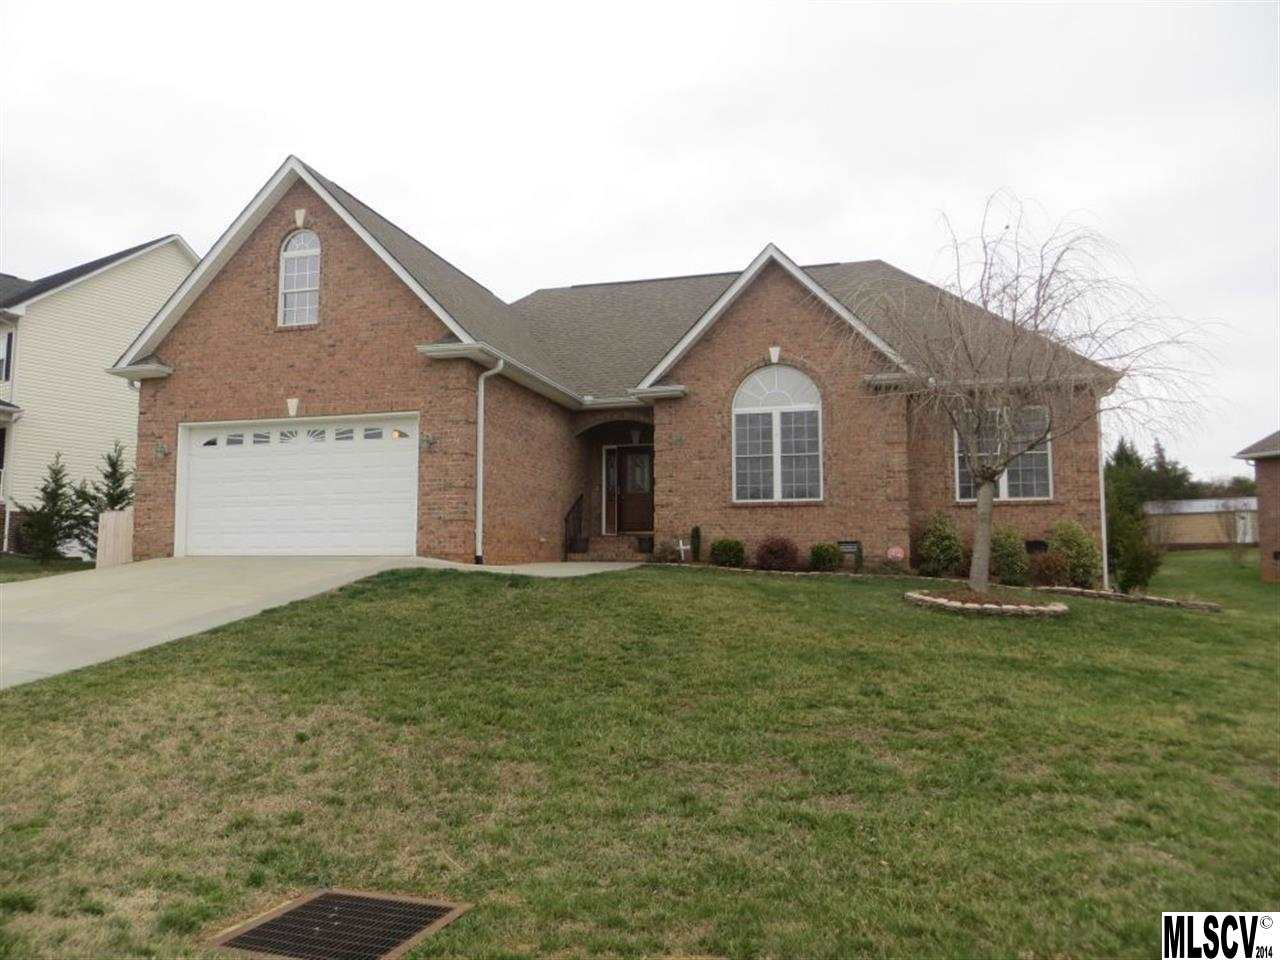 226 Browning Dr, Taylorsville, NC 28681